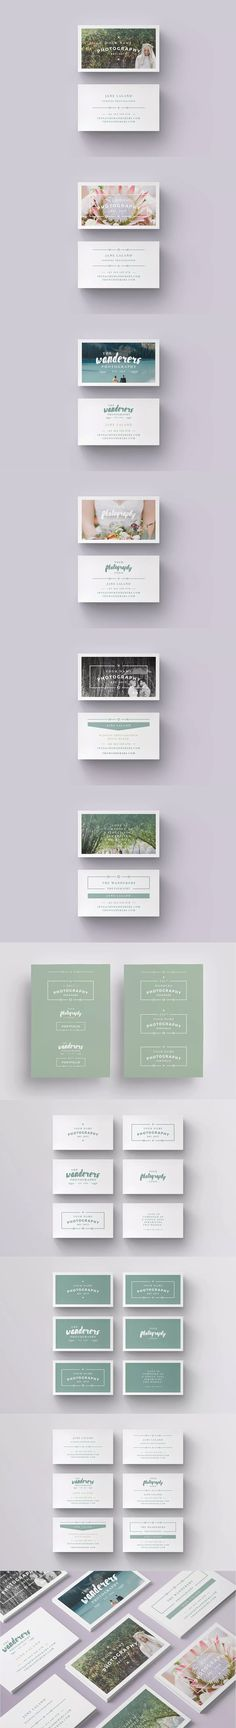 Flowers Business Card Template By Agatacreate On Creativemarket